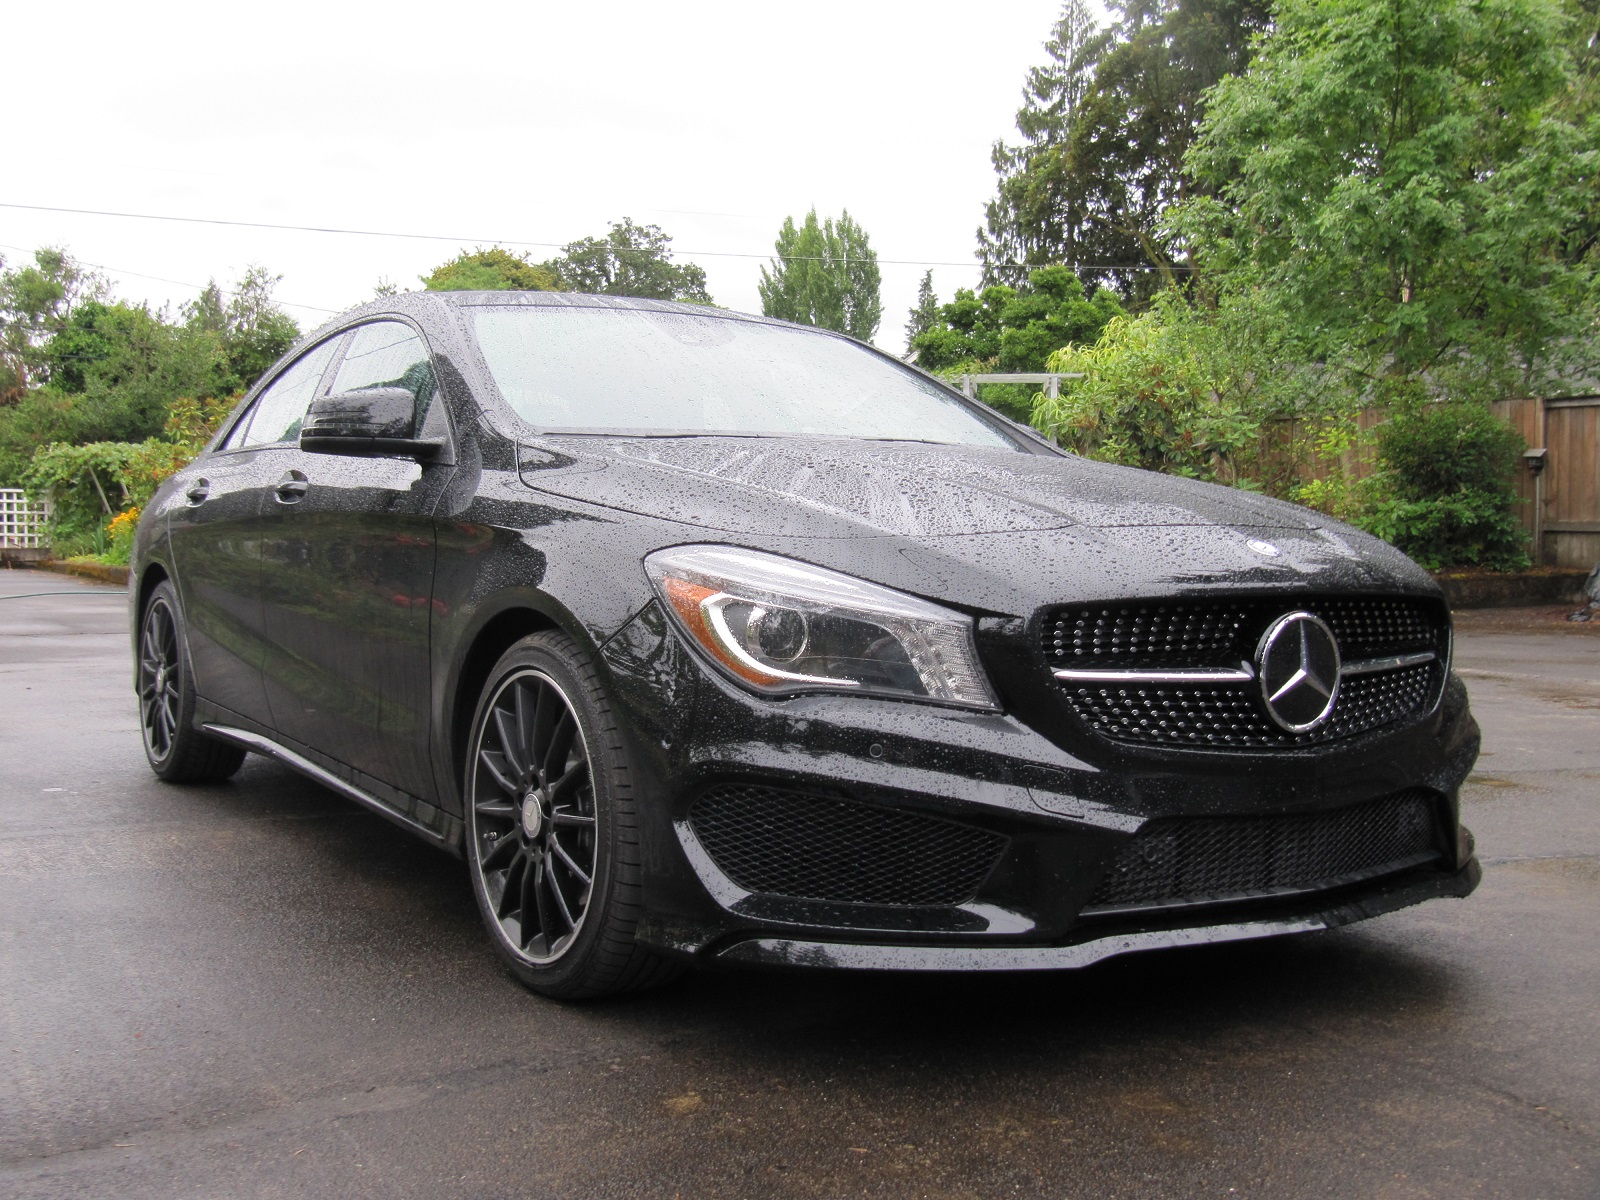 2014 mercedes benz cla 250 gas mileage review of compact for Mercedes benz cla 250 review